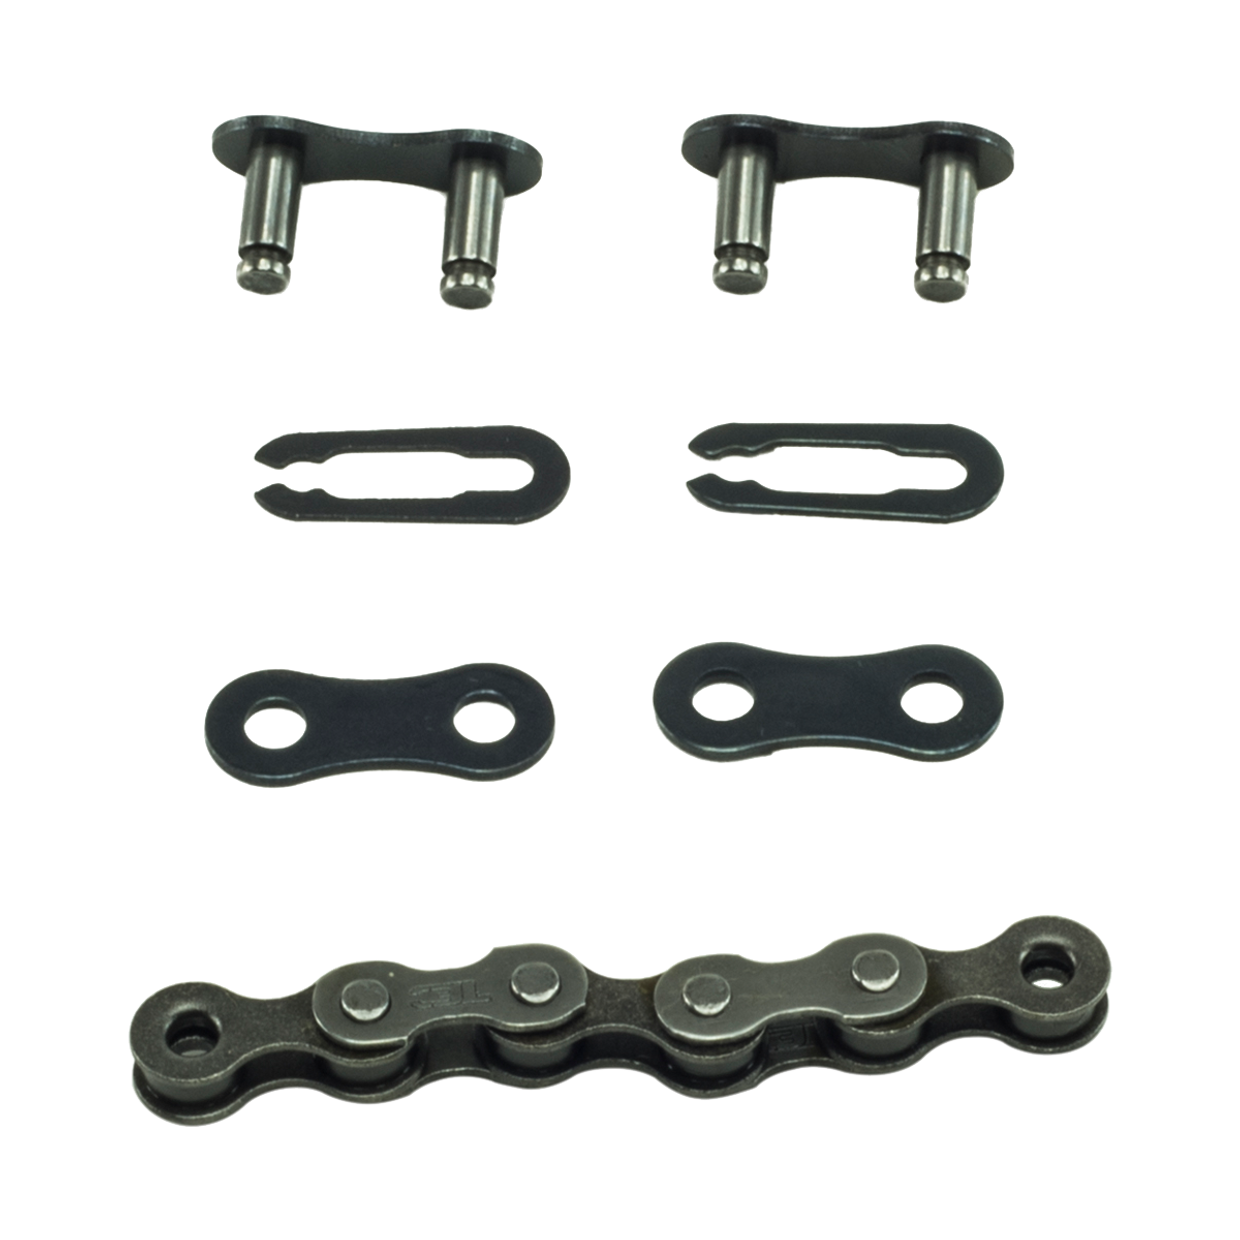 041a1340 Chain Extension Kit